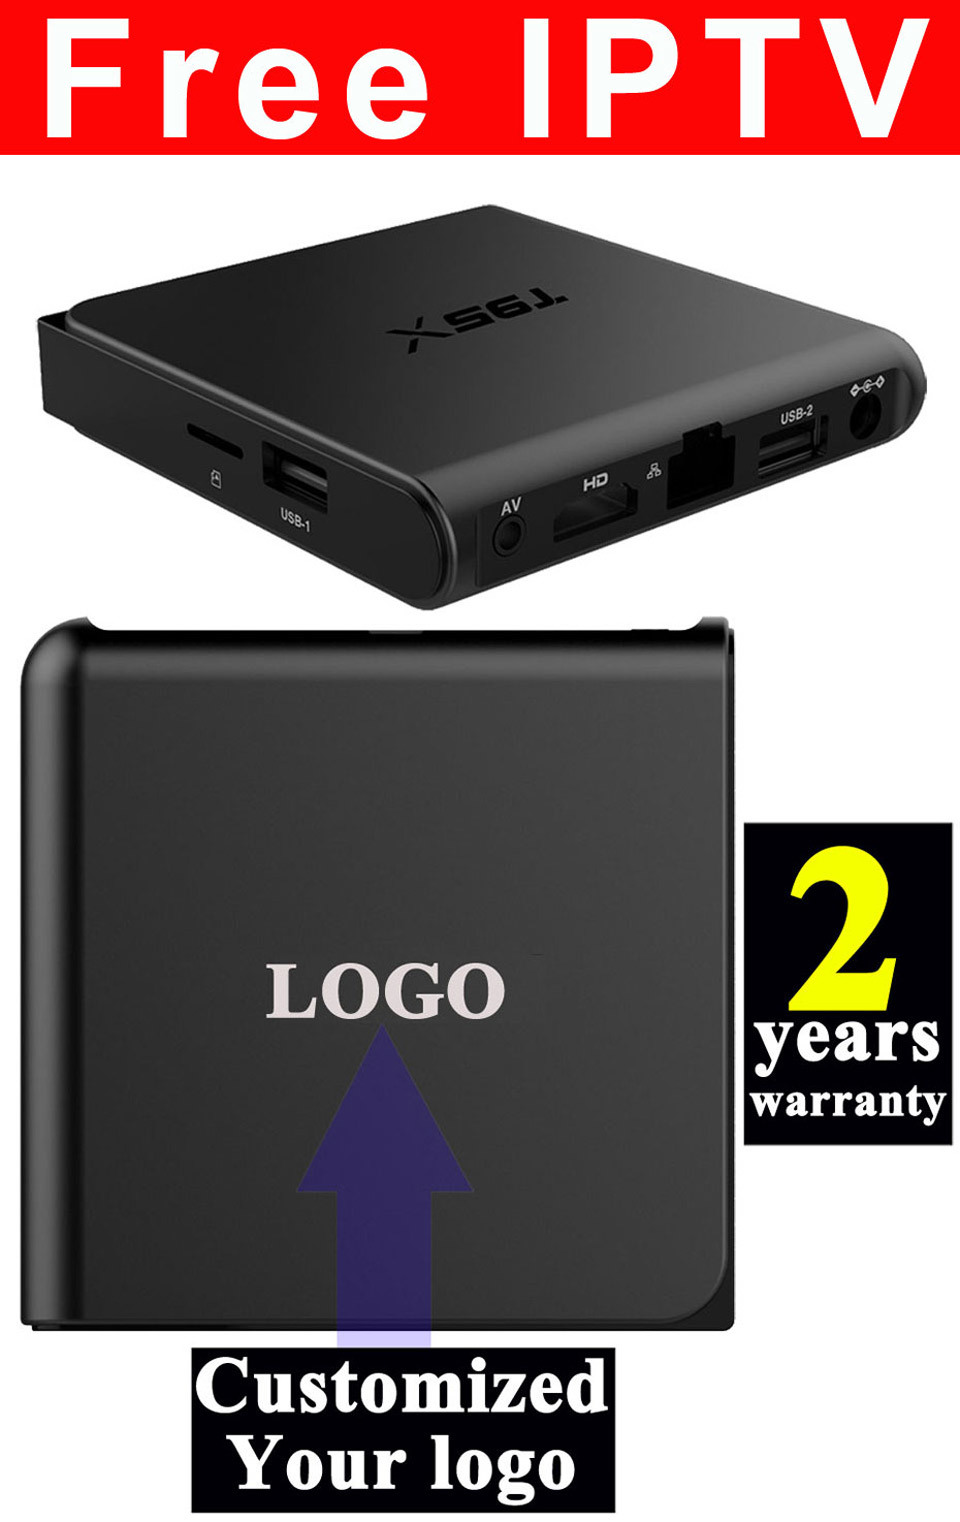 Free IPTV Android6.0 TV Box T95X